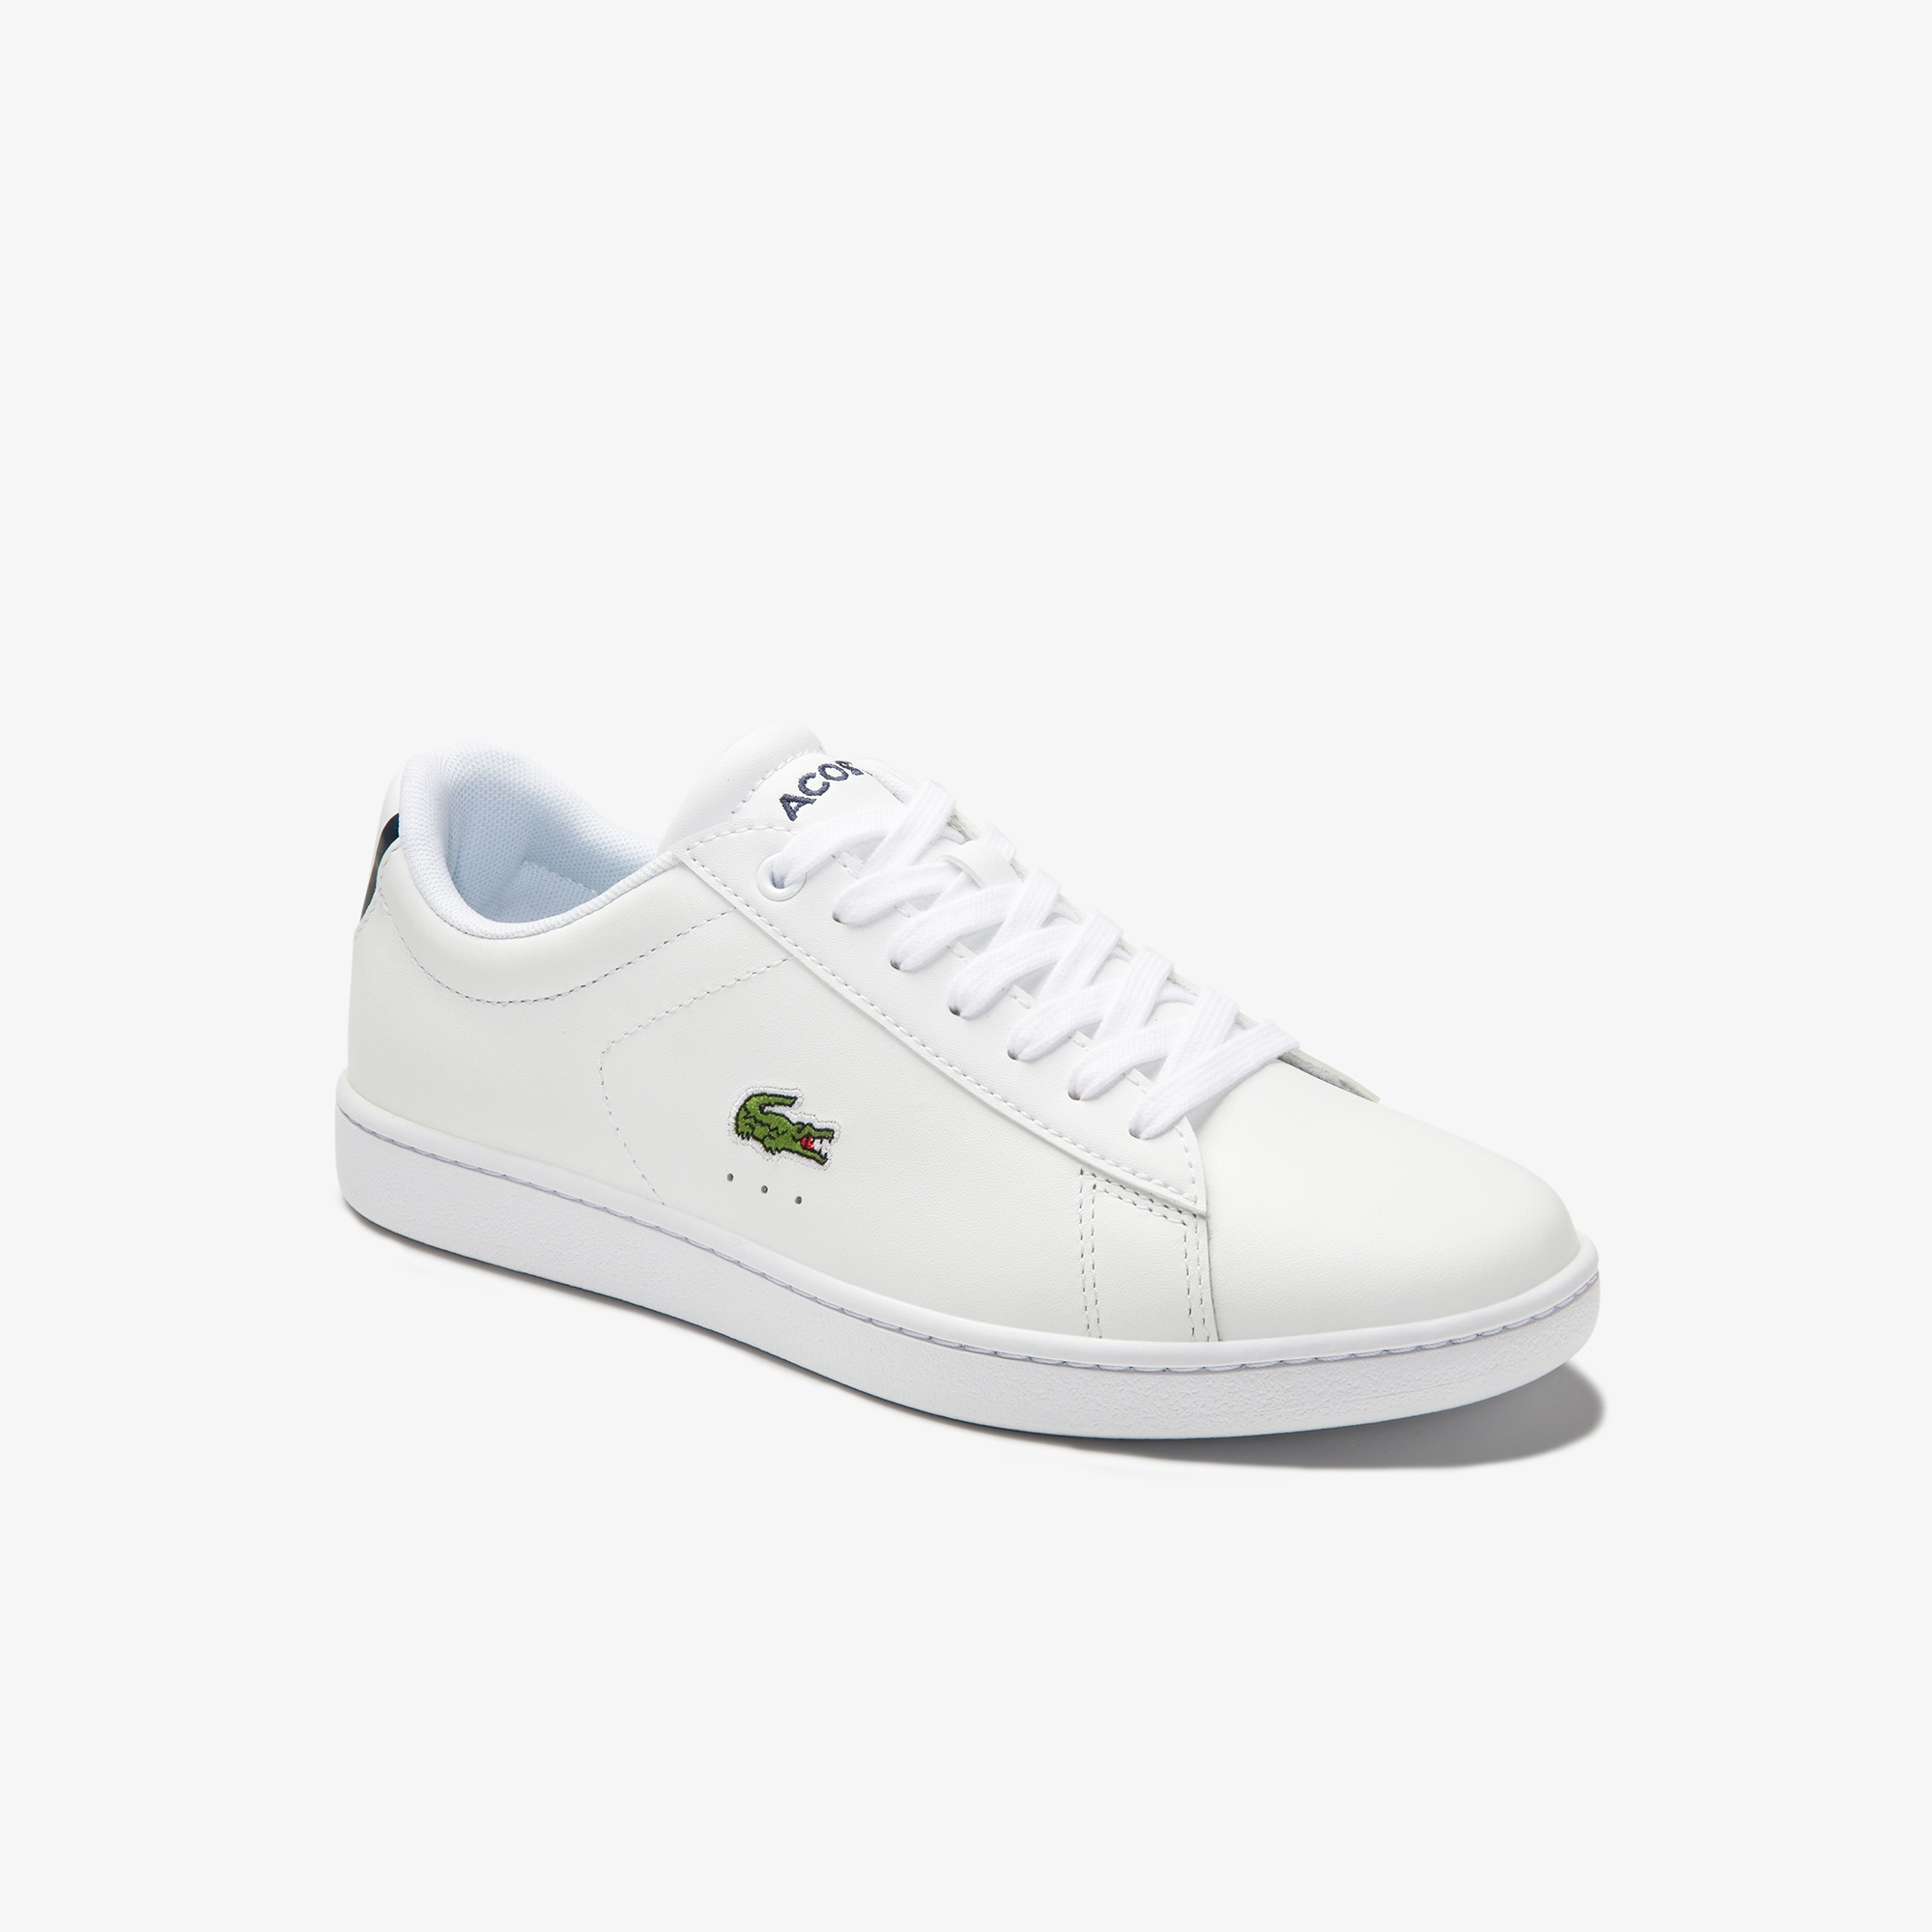 d25e60af4add Lacoste shoes for women  Boots